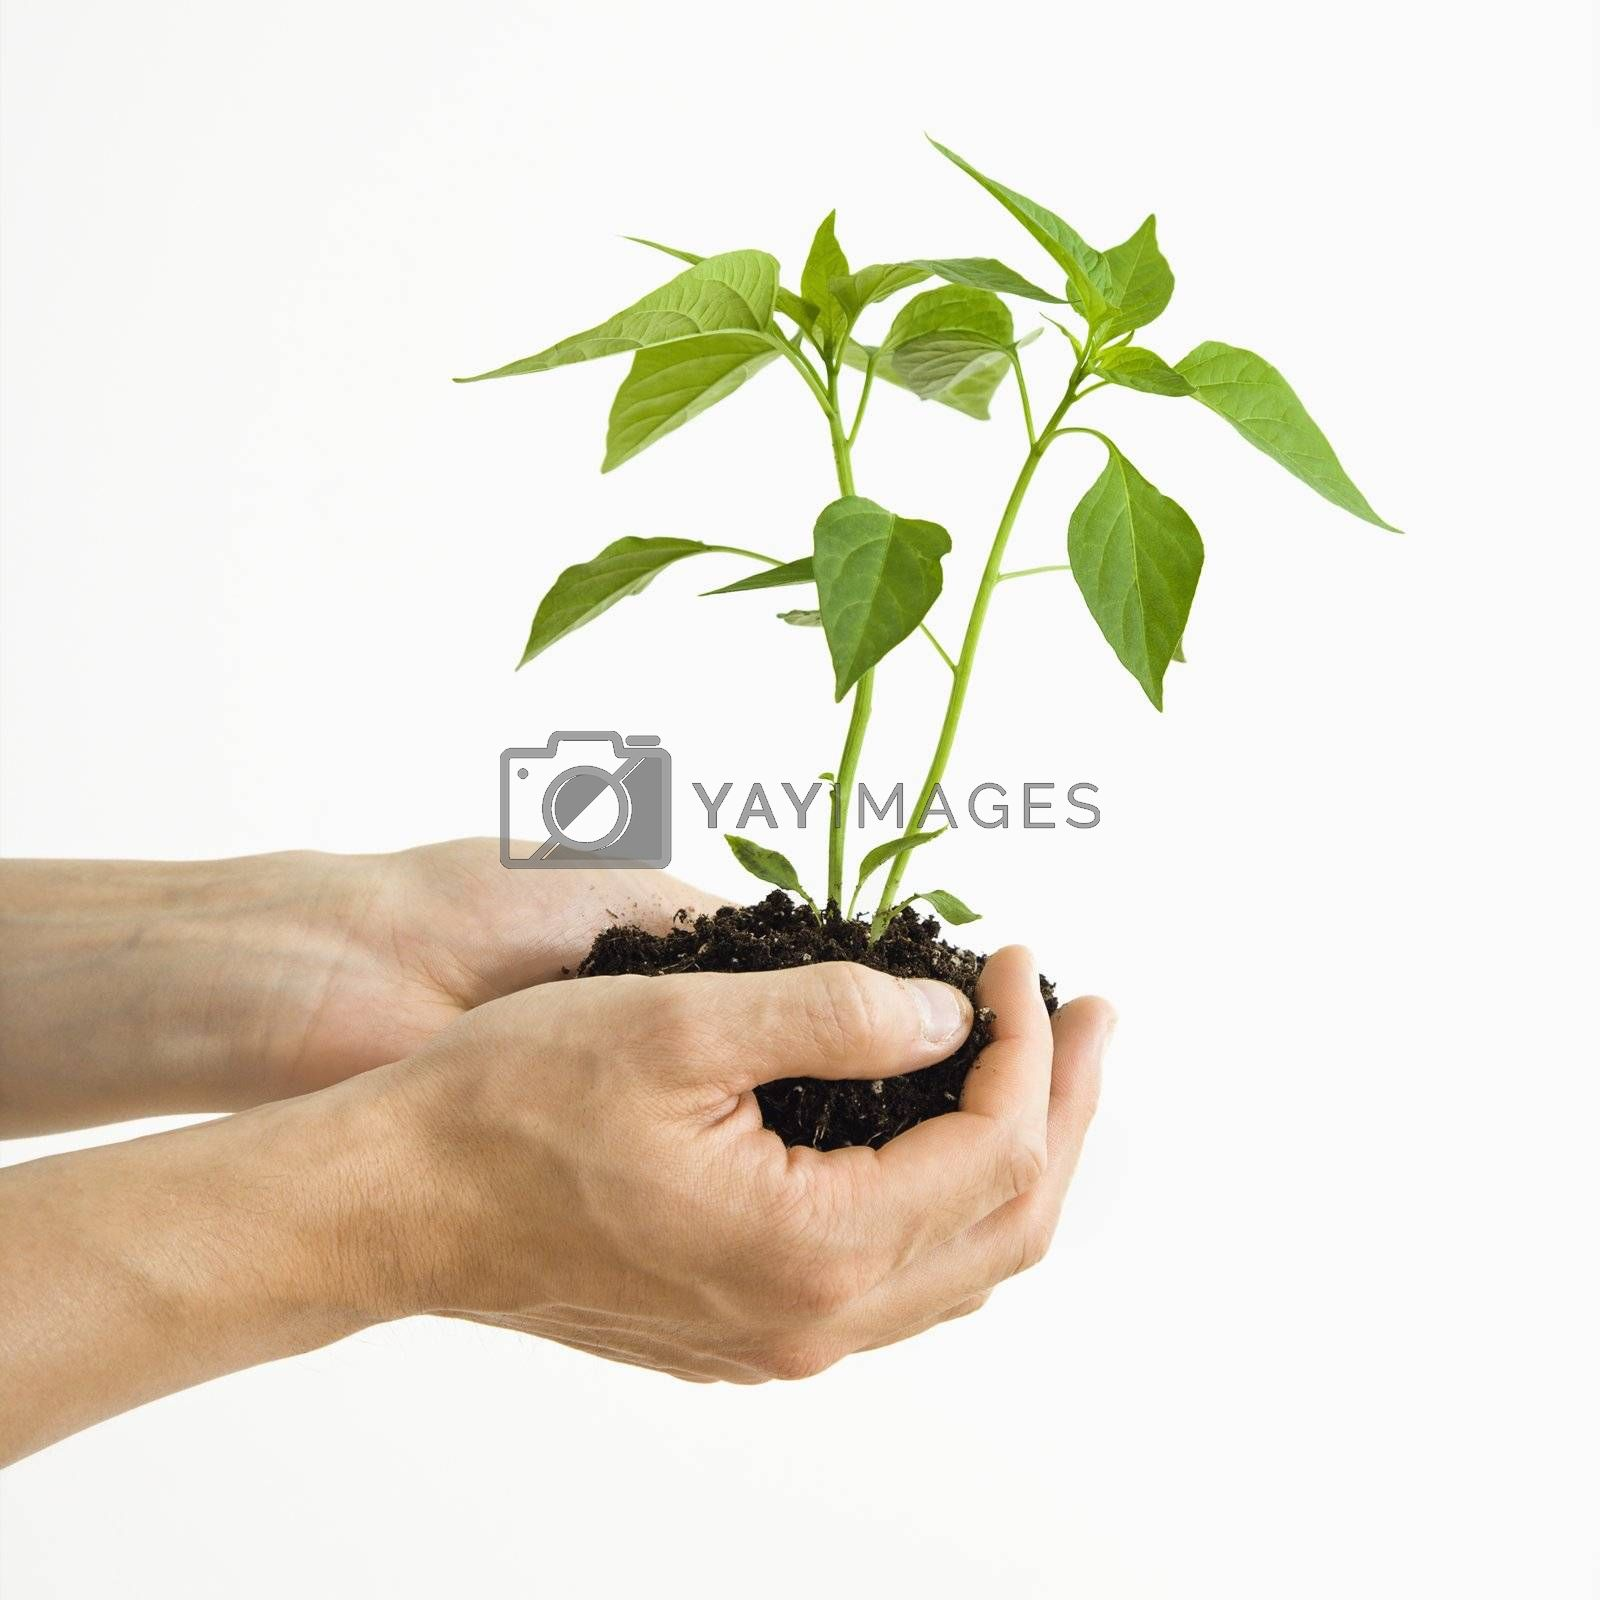 Man's hand standing holding growing cayenne plant.